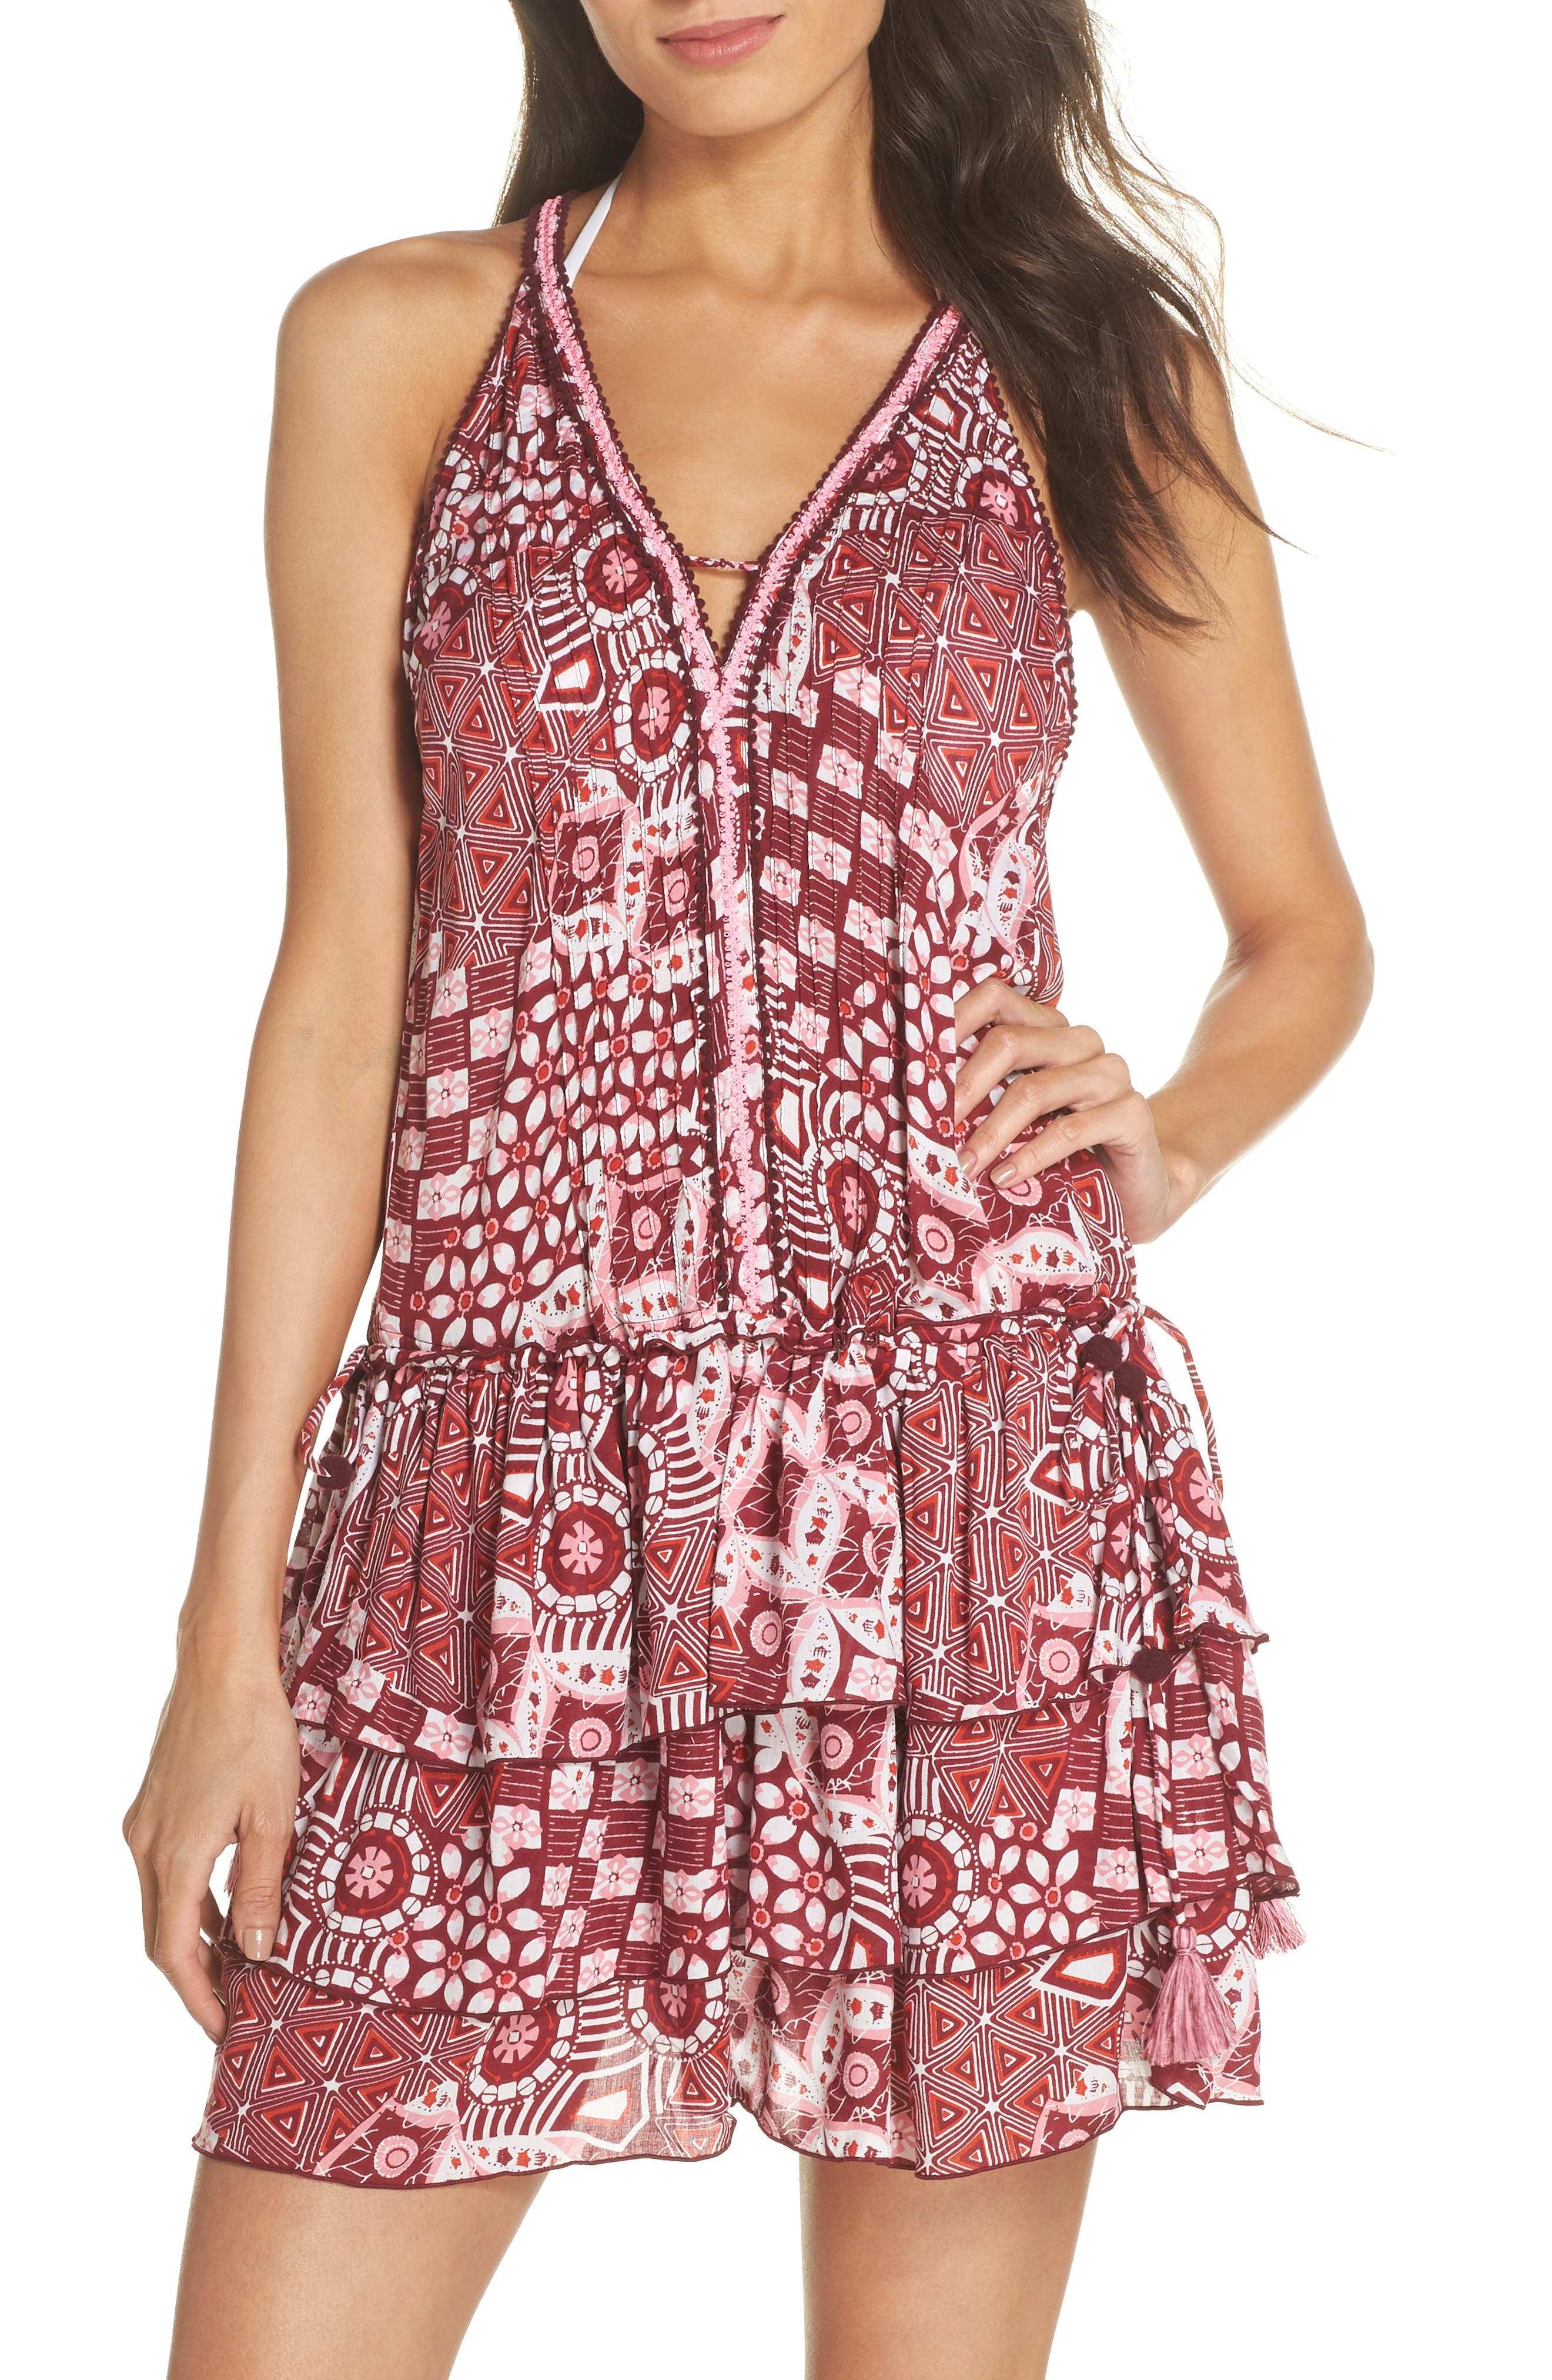 Poupette St. Barth Bety Cover-Up Minidress,                         Main,                         color, 650